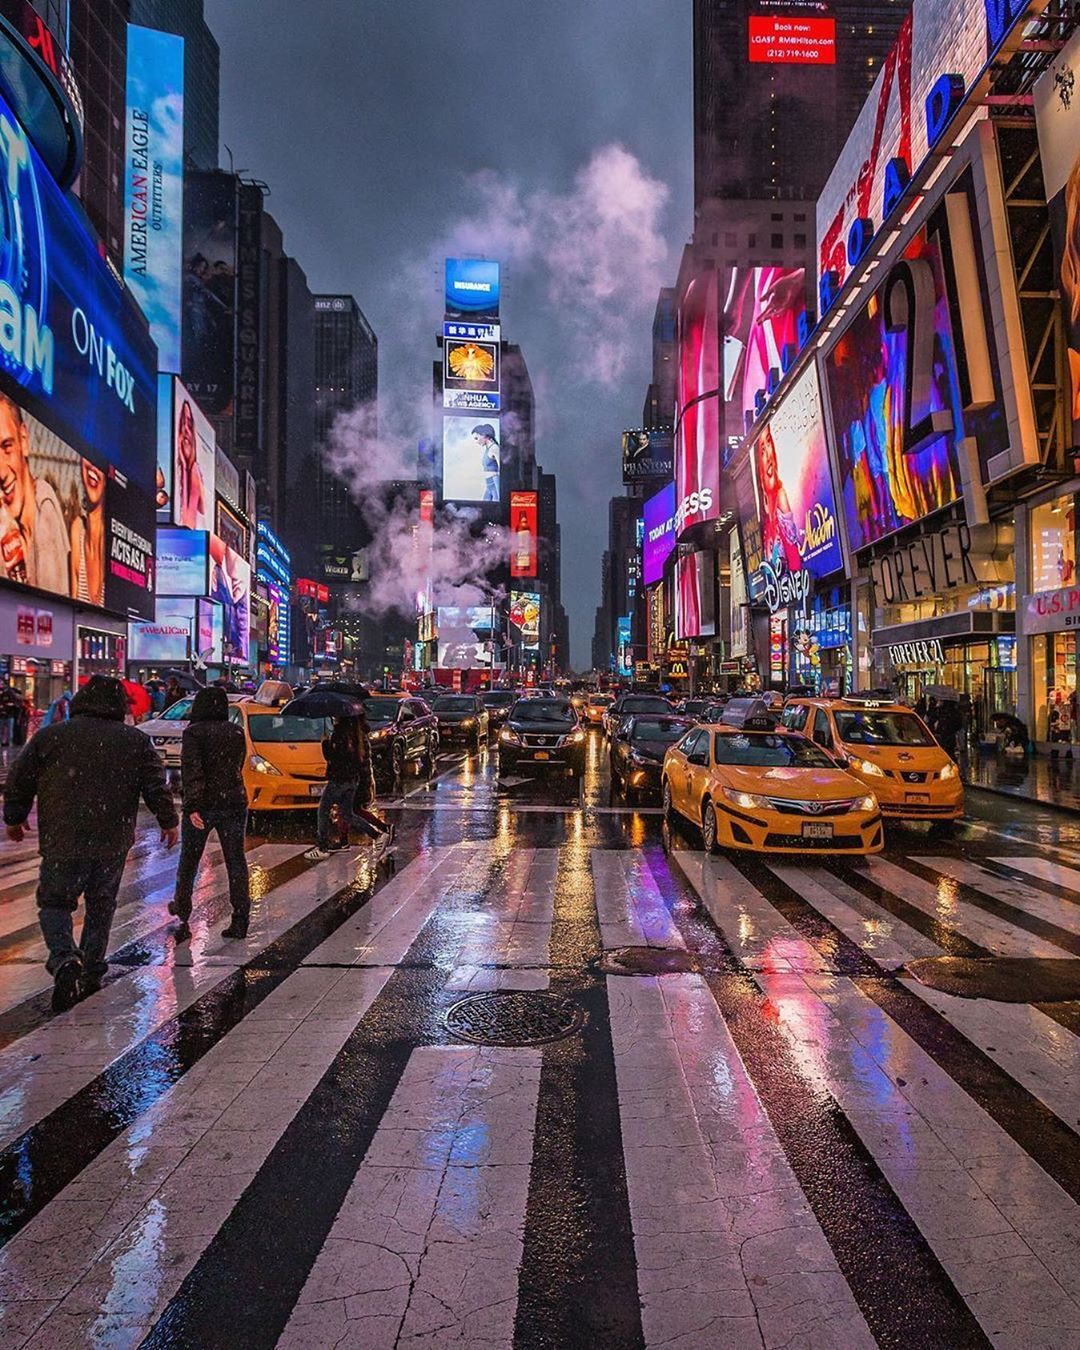 Rainy Night At Times Square By Ricardo Ricp2206 Picturesofnewyork City Aesthetic Times Square Photography New York Pictures